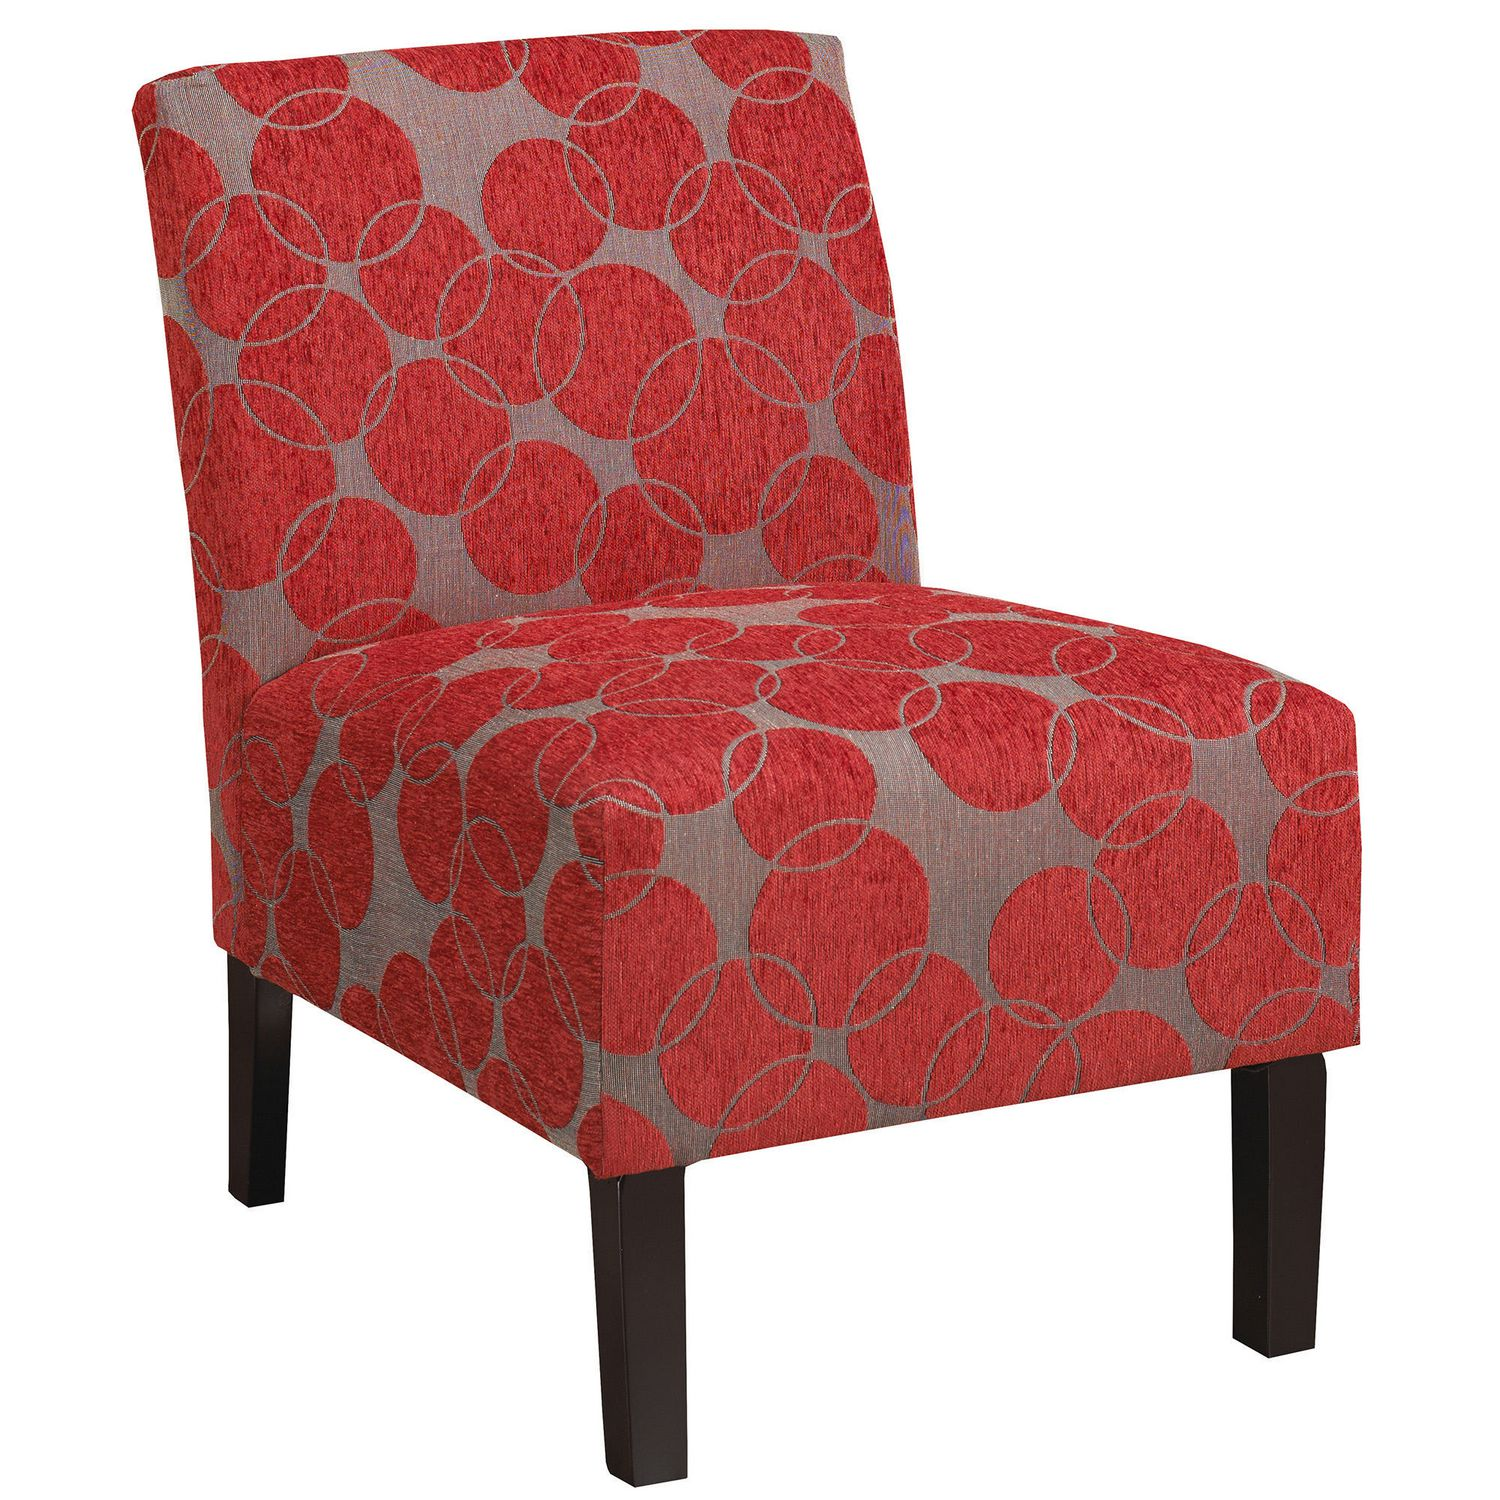 Fullsize Of Red Accent Chair